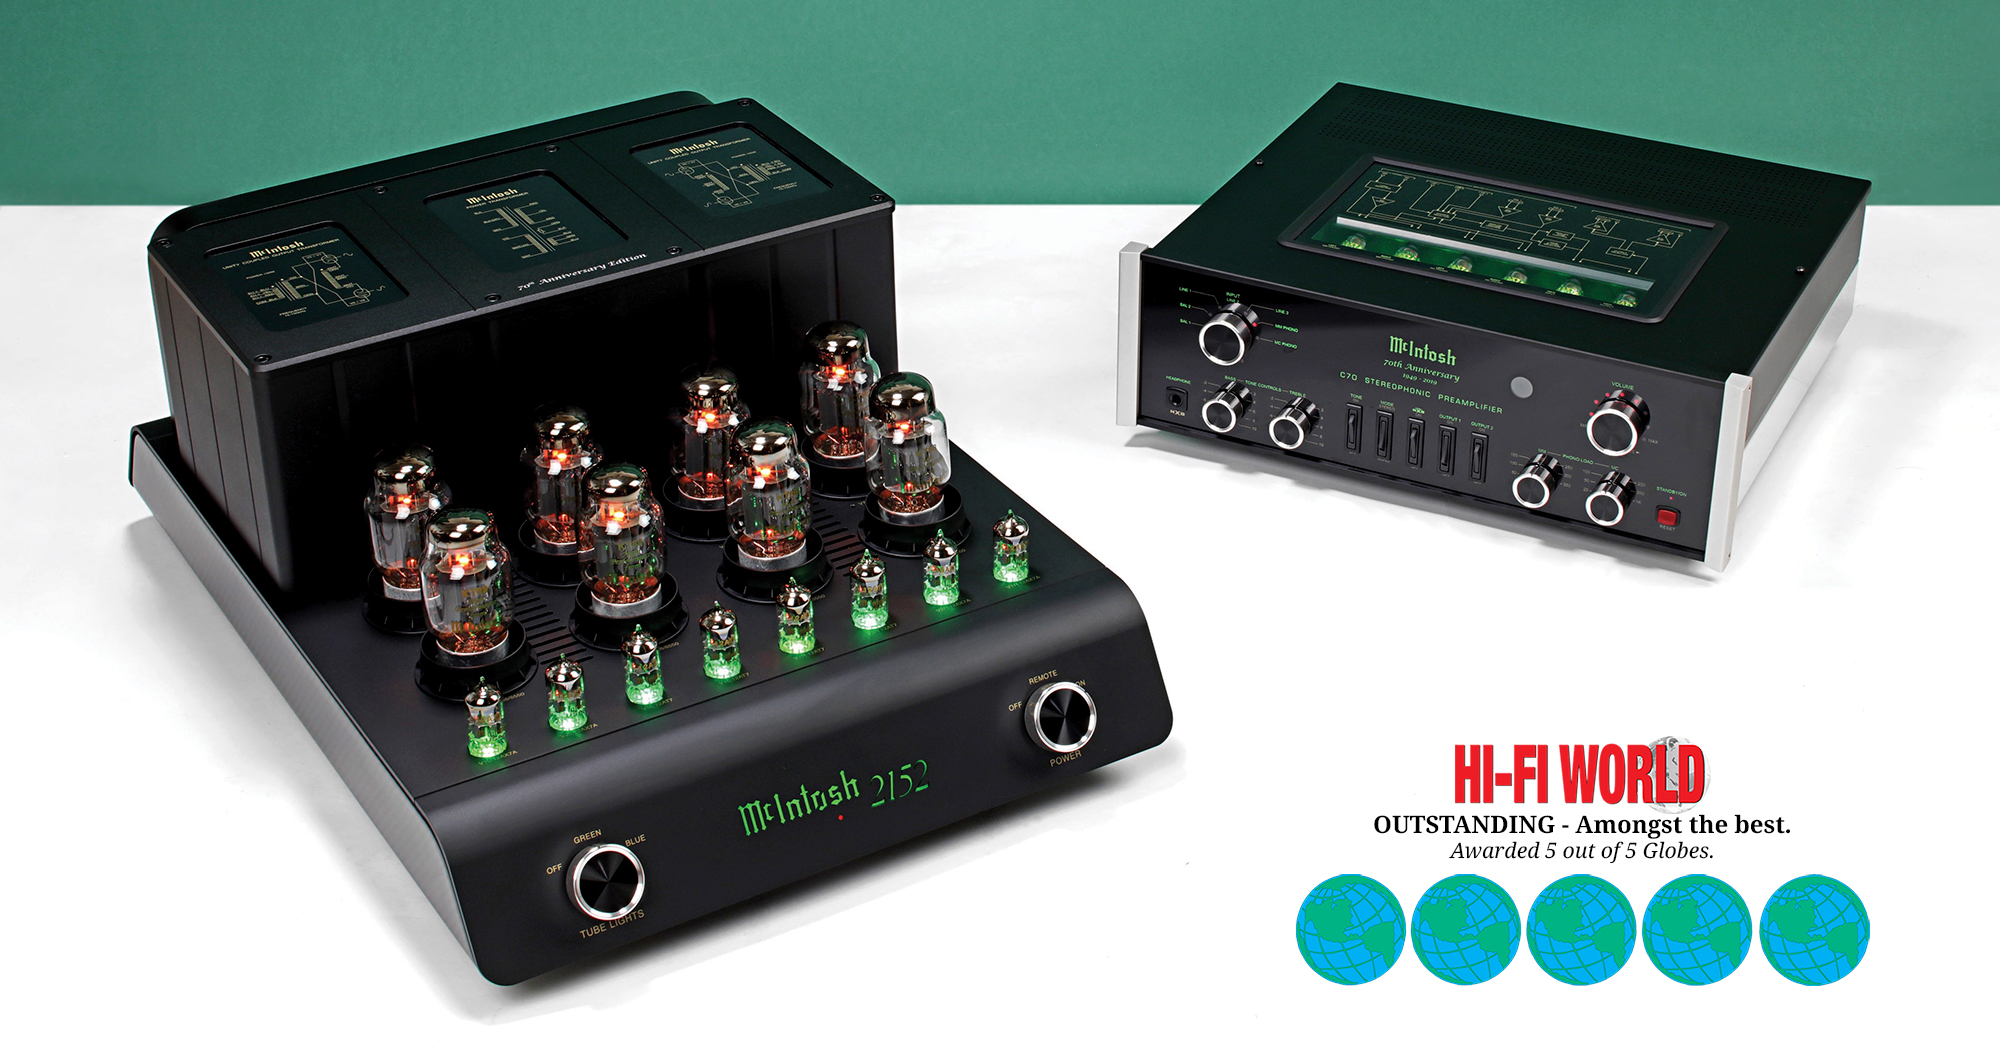 McIntosh - Hi-Fi World reviews the